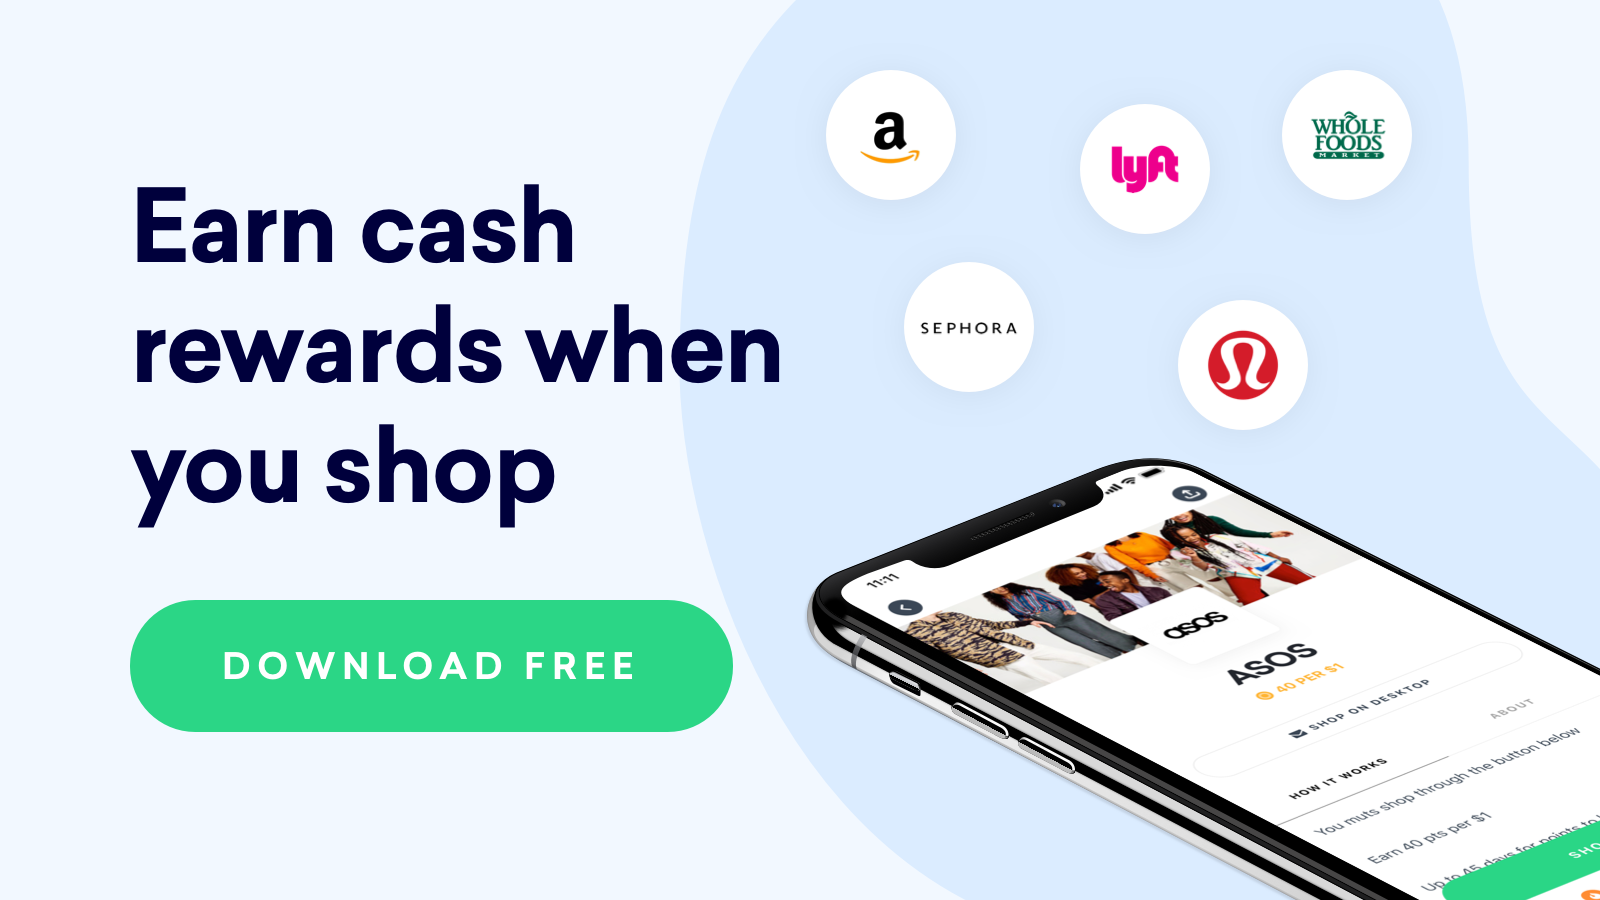 Earn cash rewards with drop - easy $5